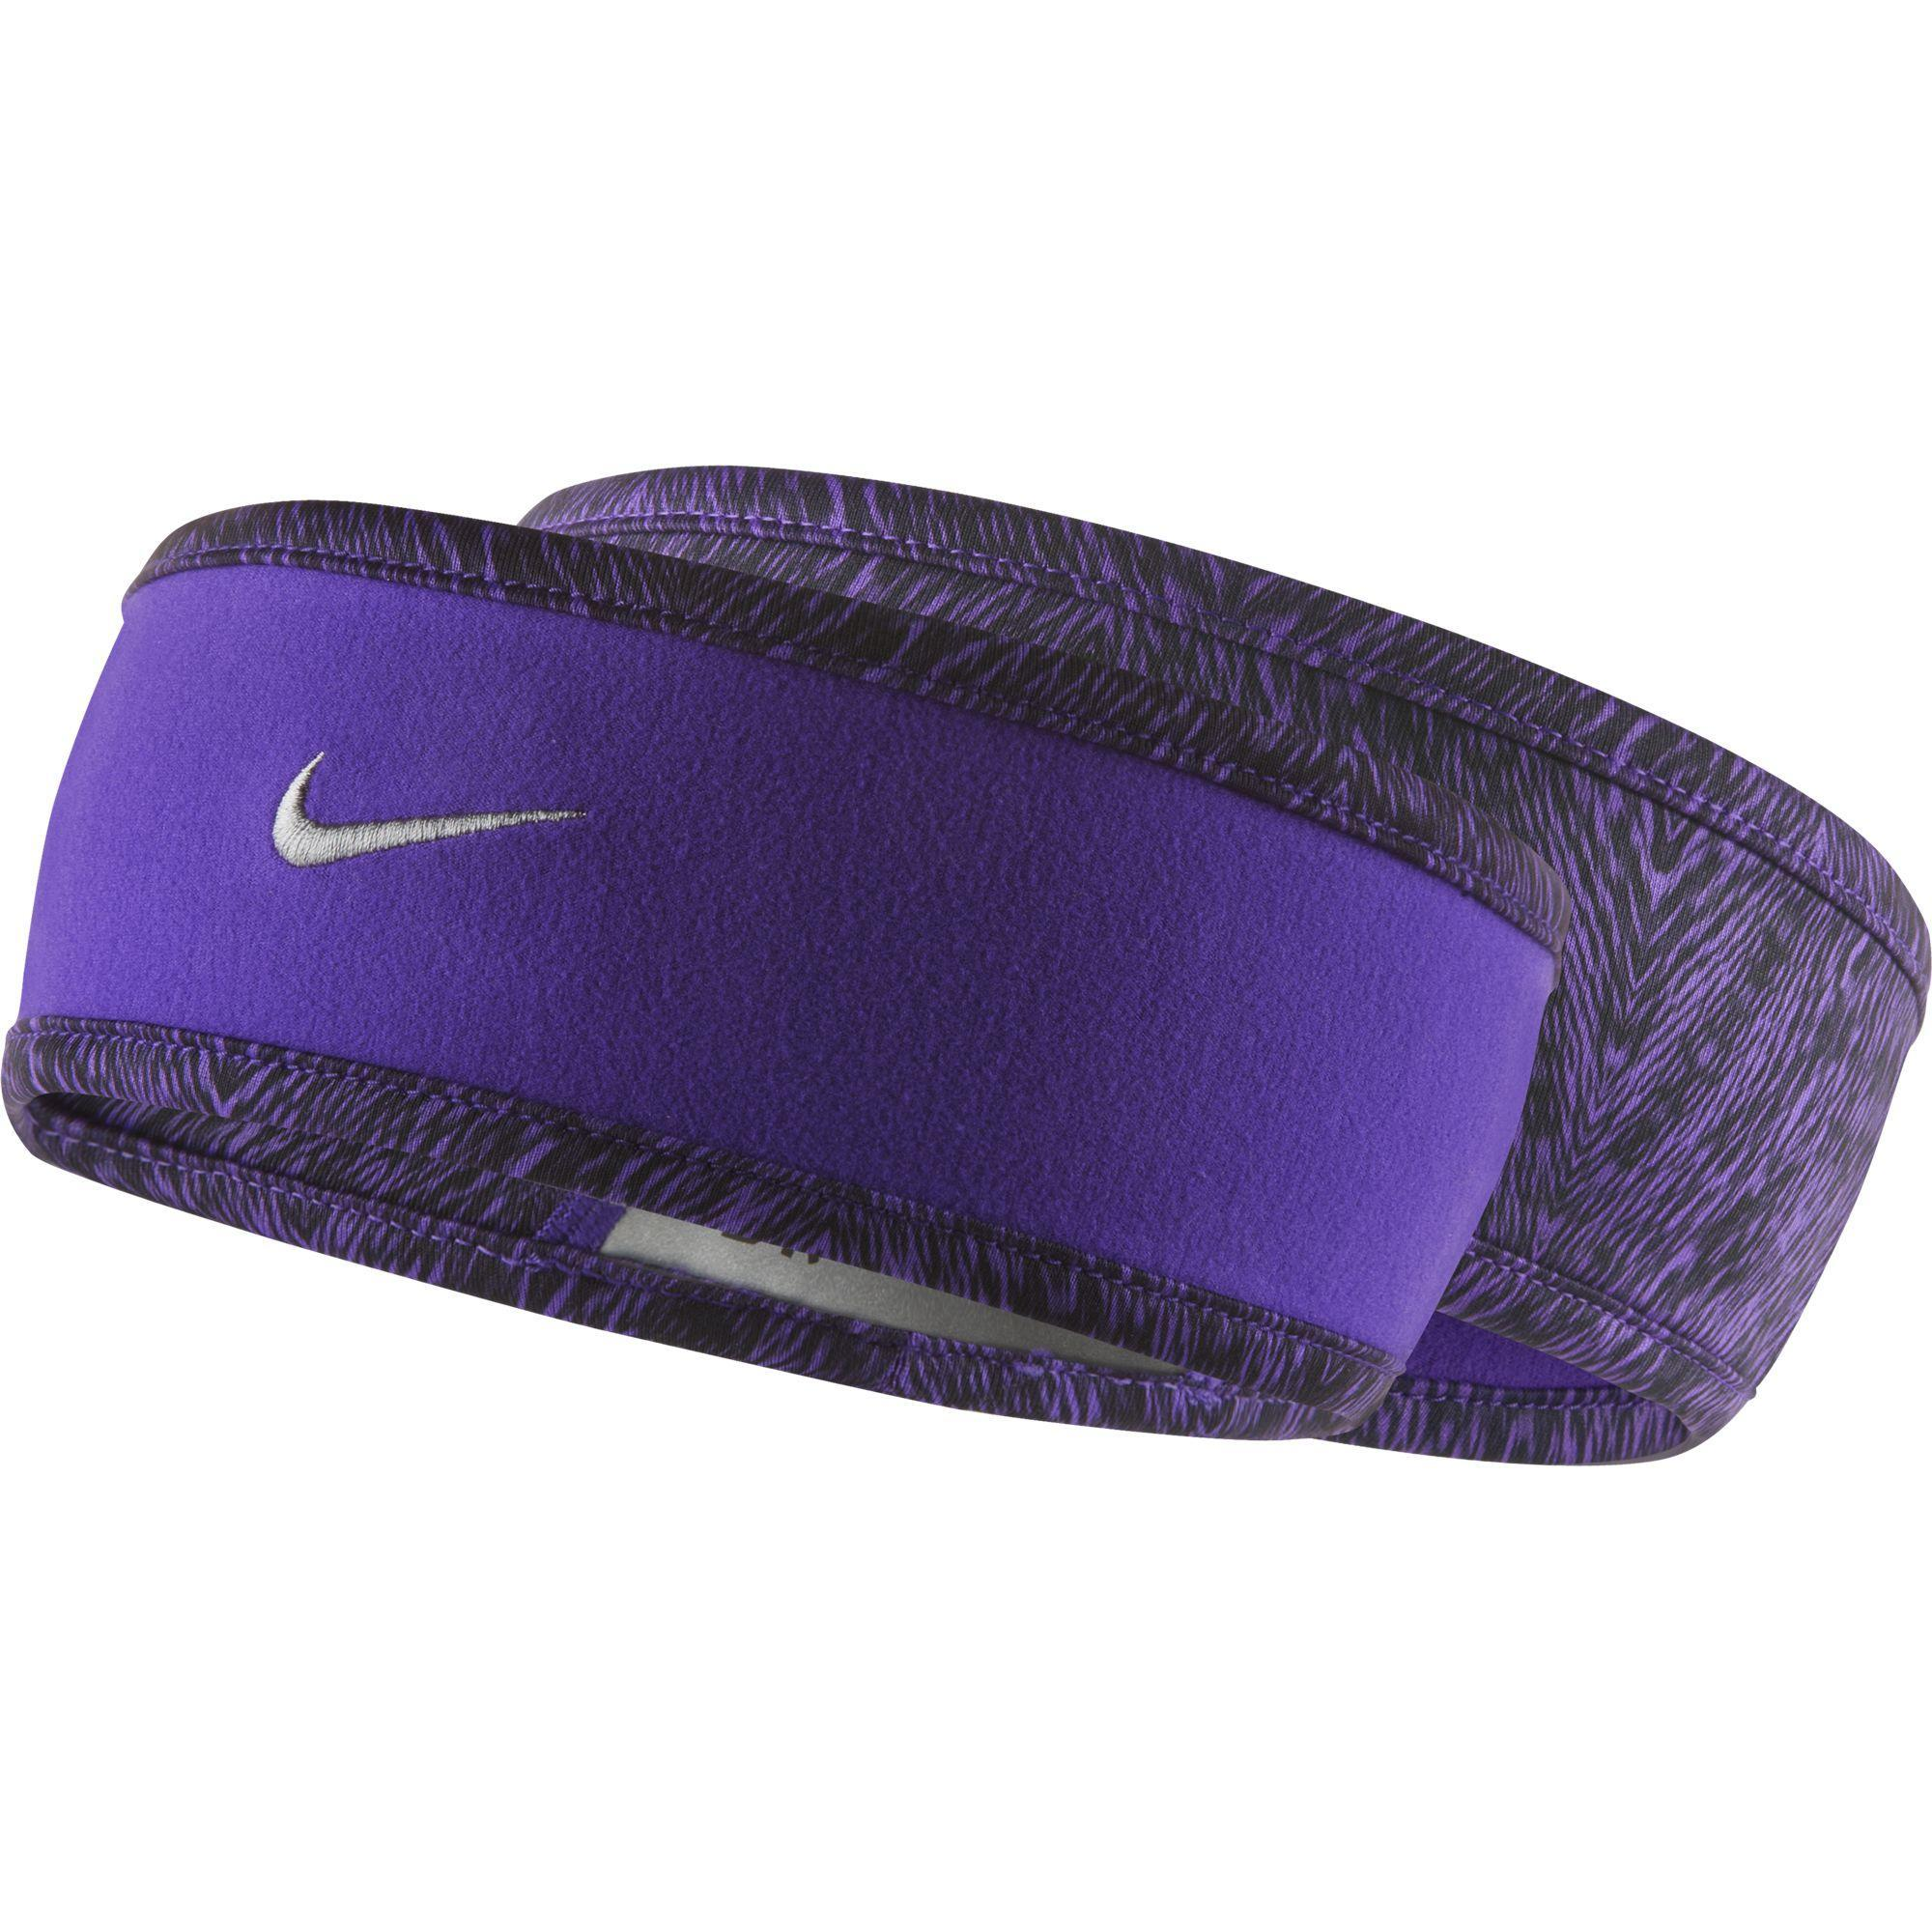 Nike Womens Run Cold-Weather Reversible Headband - Grape Reflective Silver  - Tennisnuts.com 15a0c775e86